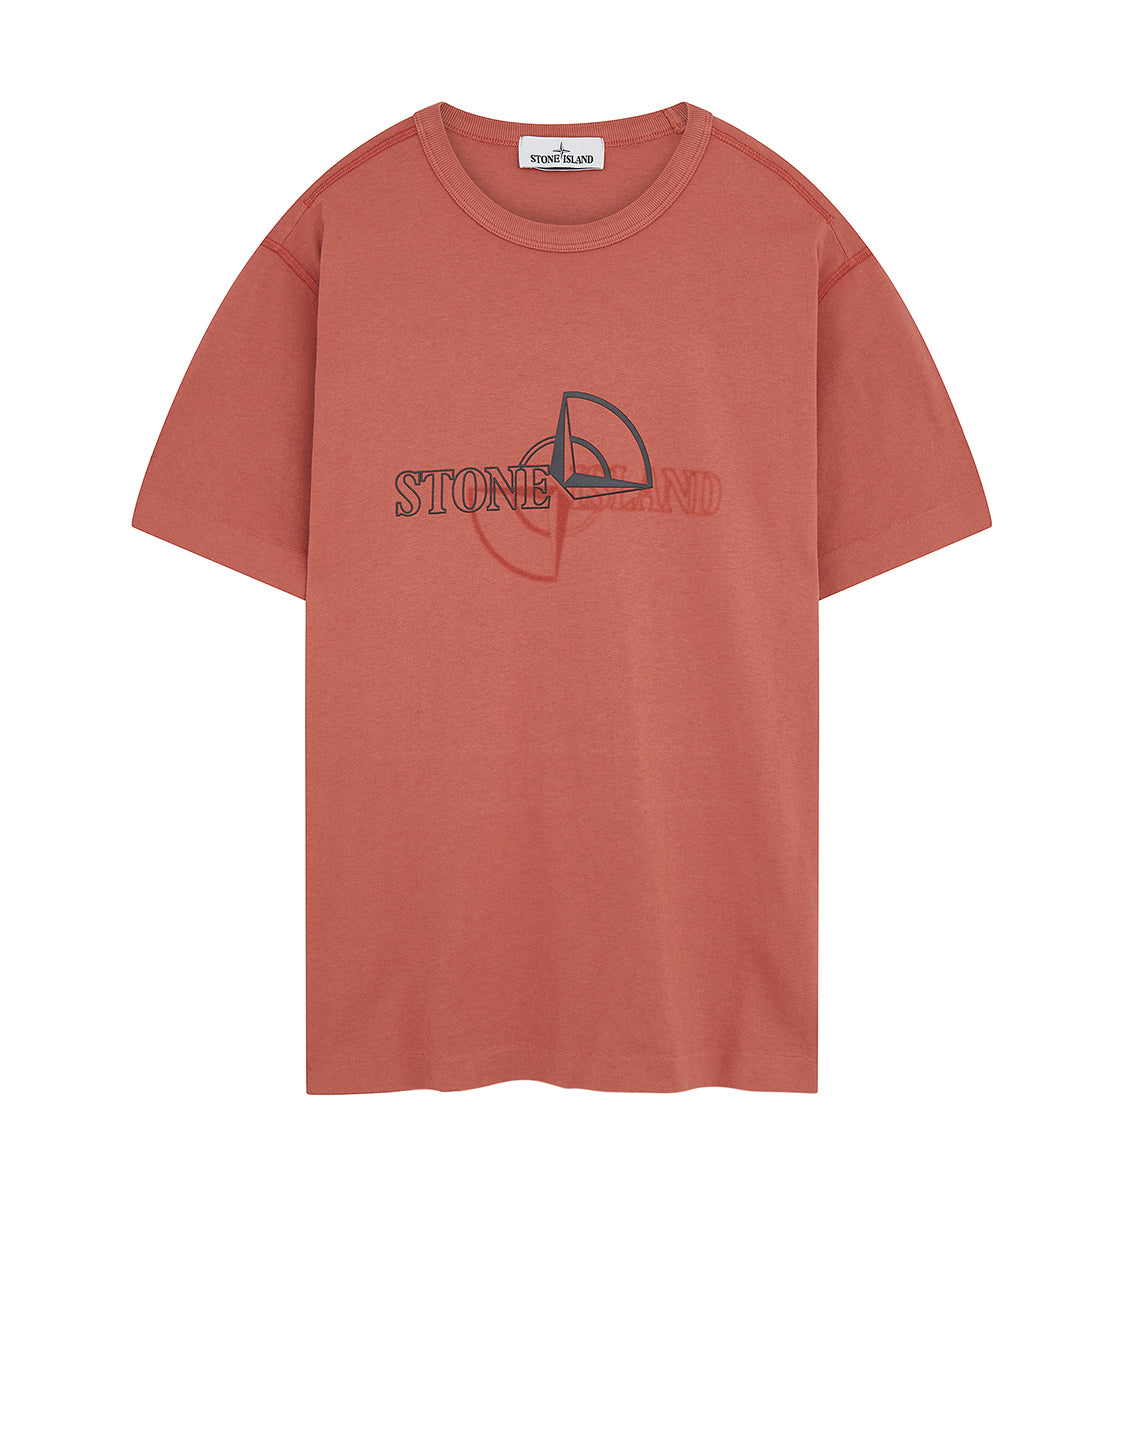 23381 'GRAPHIC TWO' PRINT T-Shirt in Rust